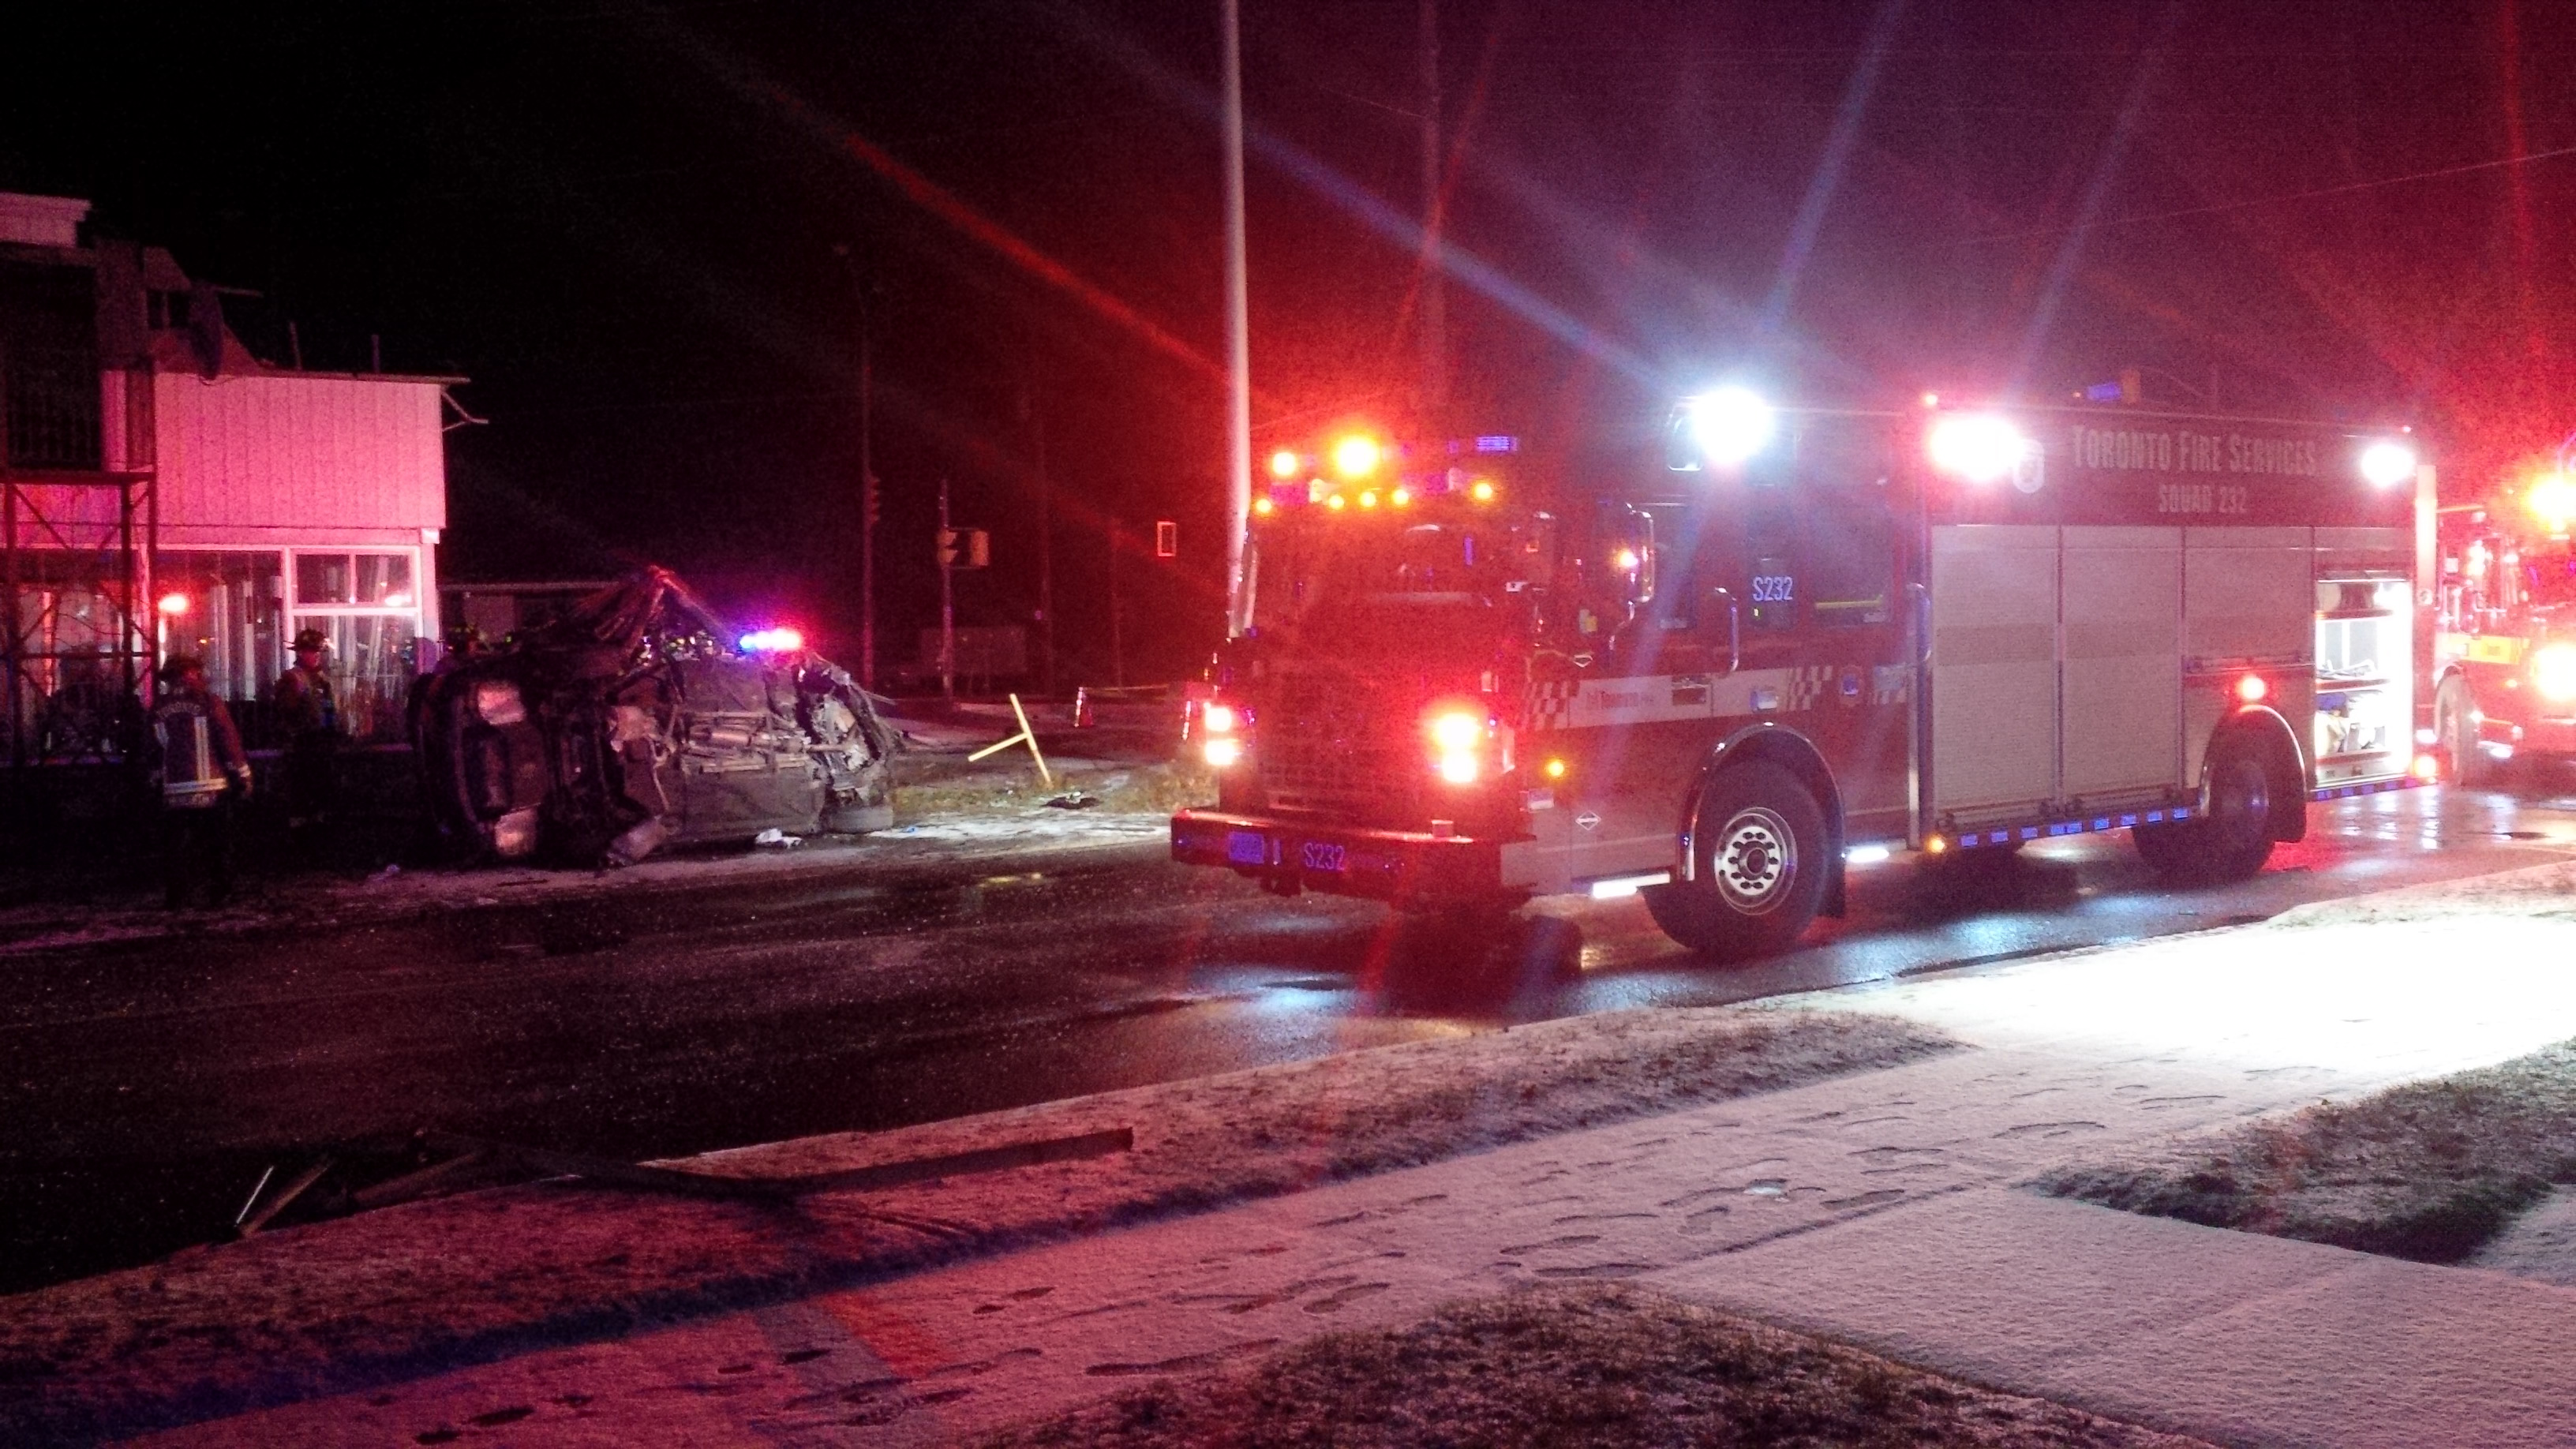 The Driver Is In Hospital After A Single Vehicle Crash On Kingston Road Dec